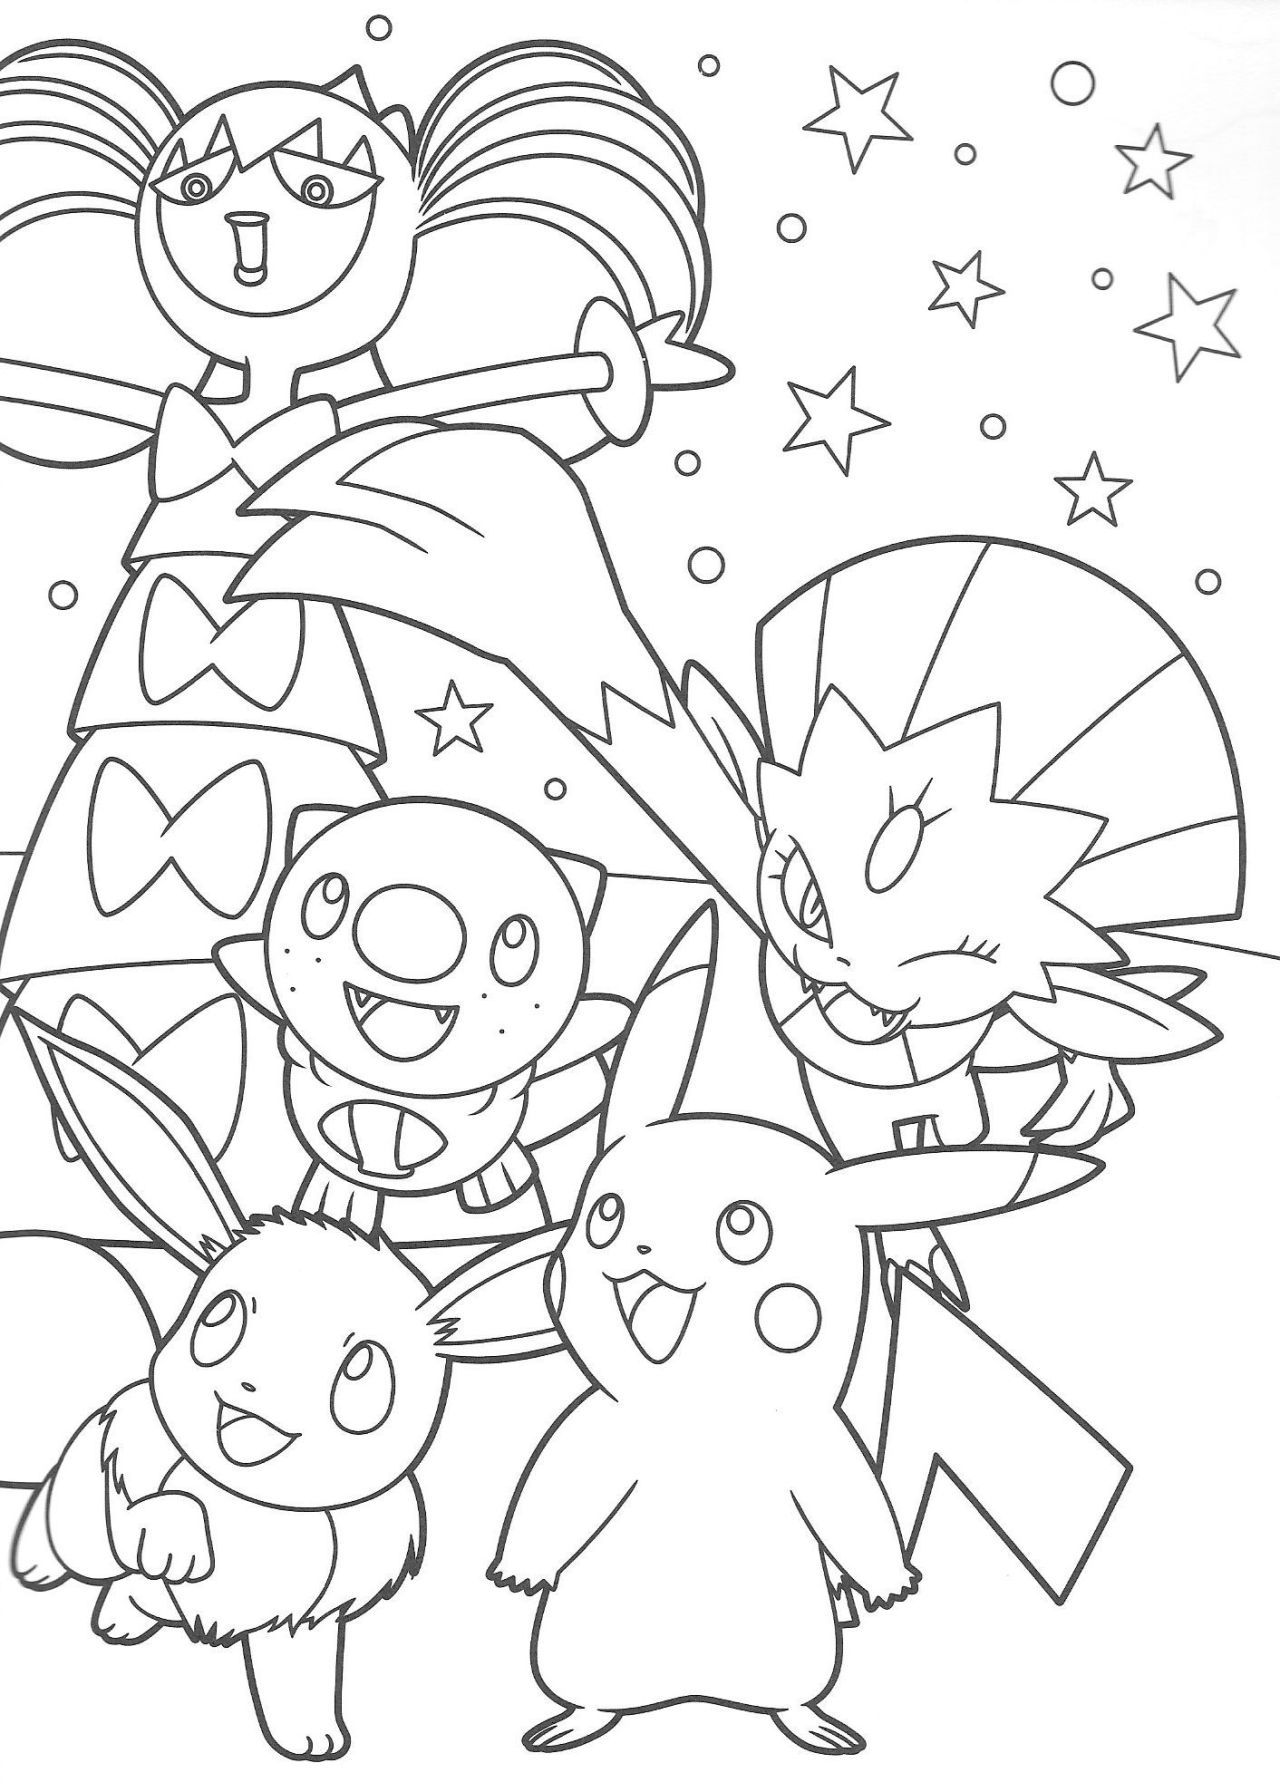 Pokescans Pokemon Coloring Sheets Pokemon Coloring Pages Pikachu Coloring Page